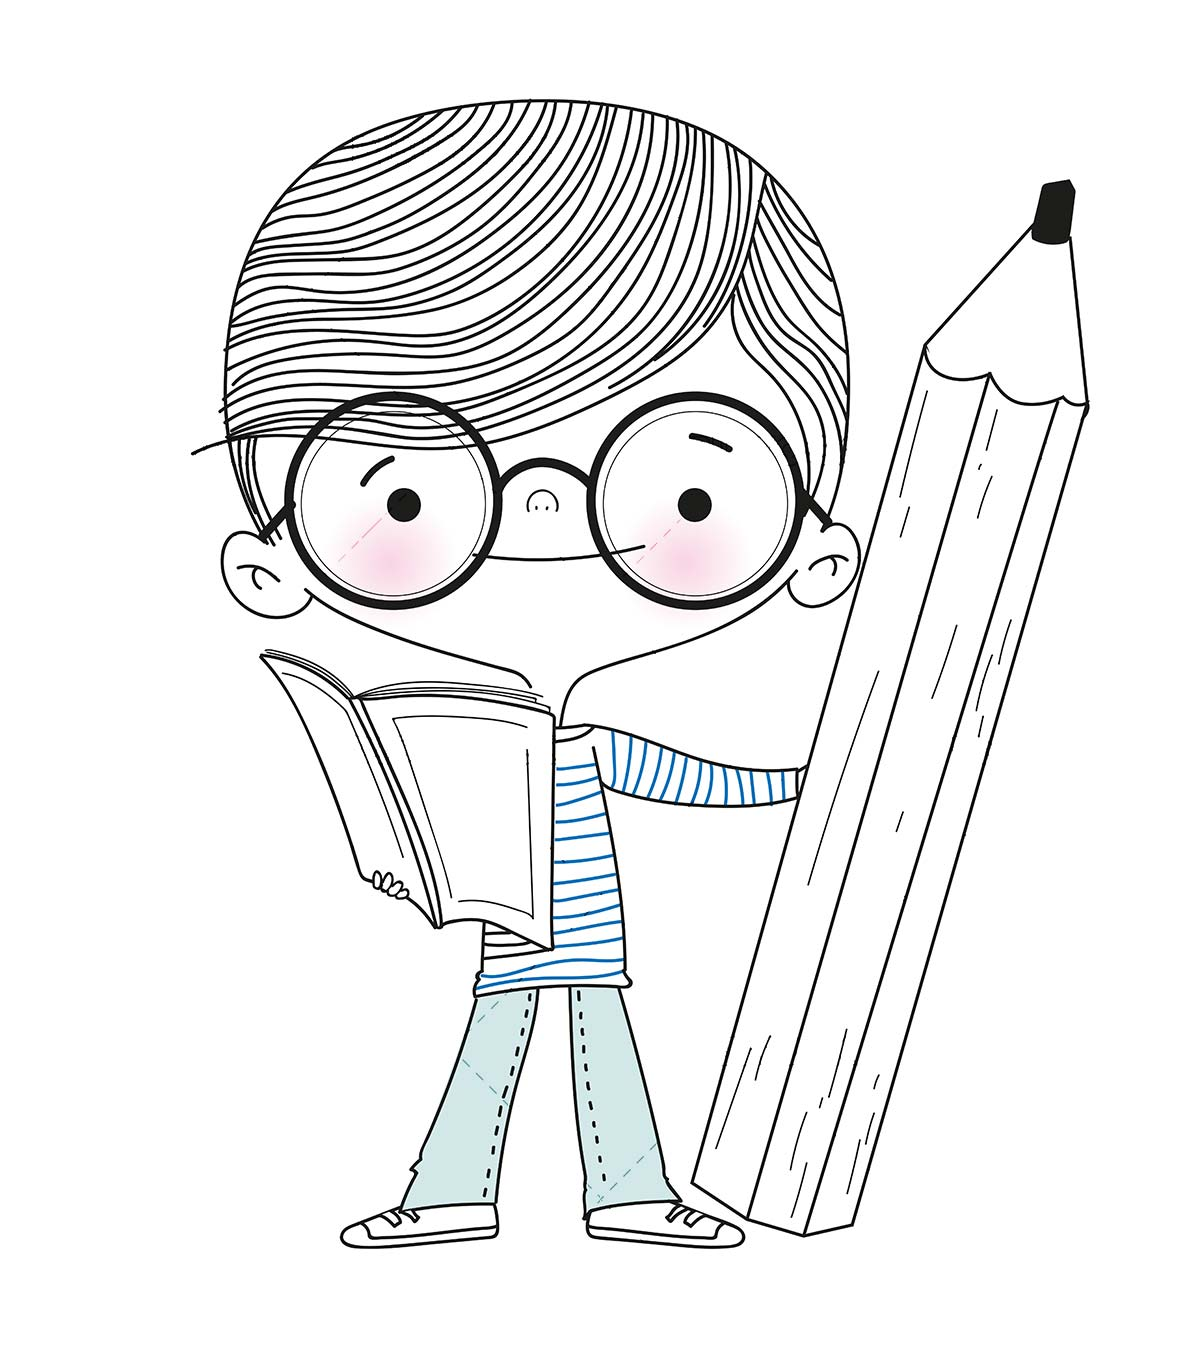 Boy reading a book with a pencil in his hand